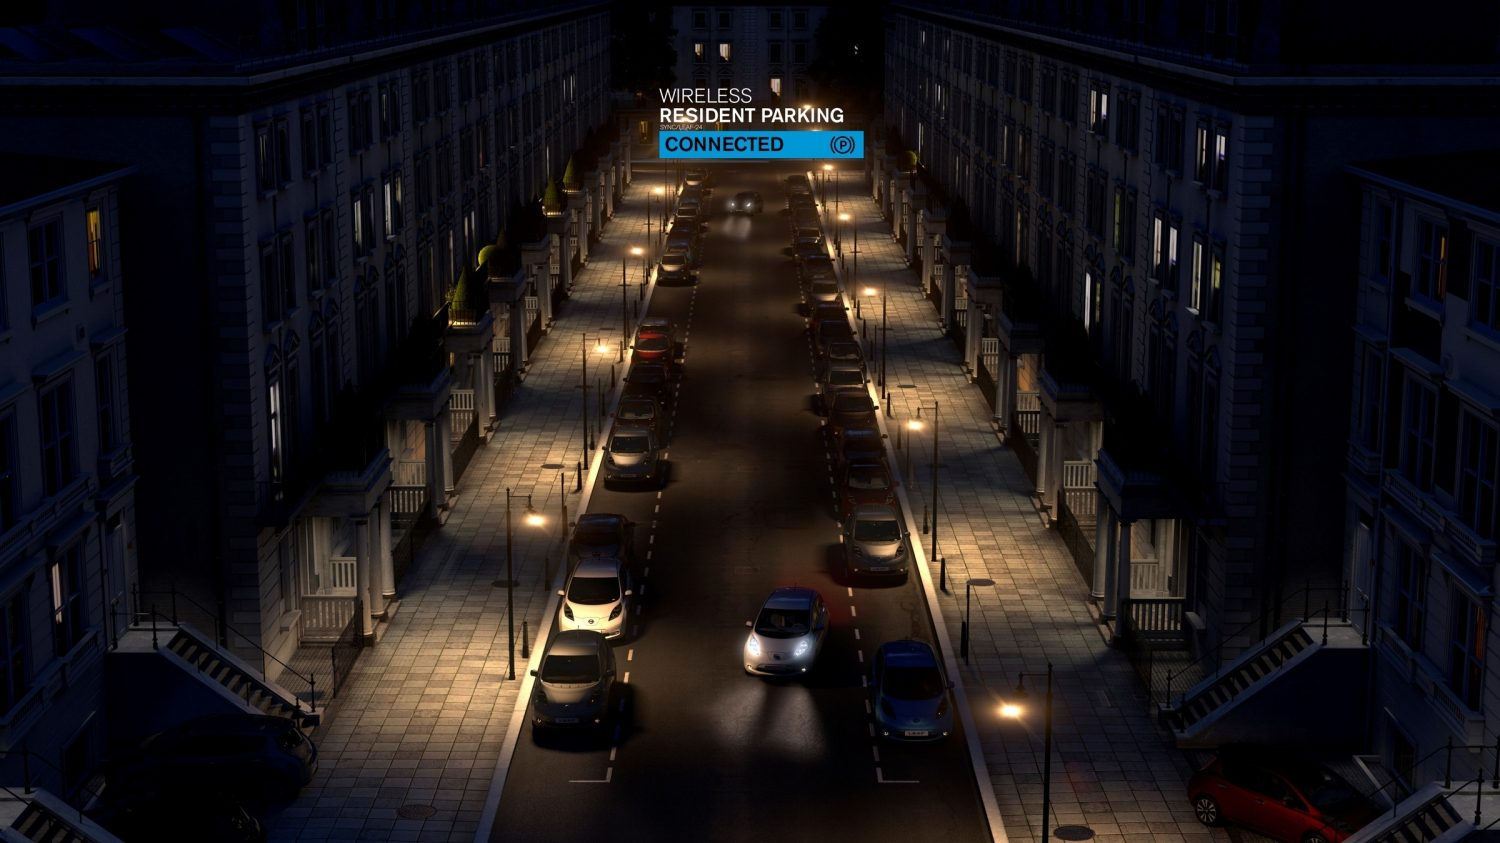 Cars that autonomously park and charge, all while you're fast asleep, will populate the streets of our future.